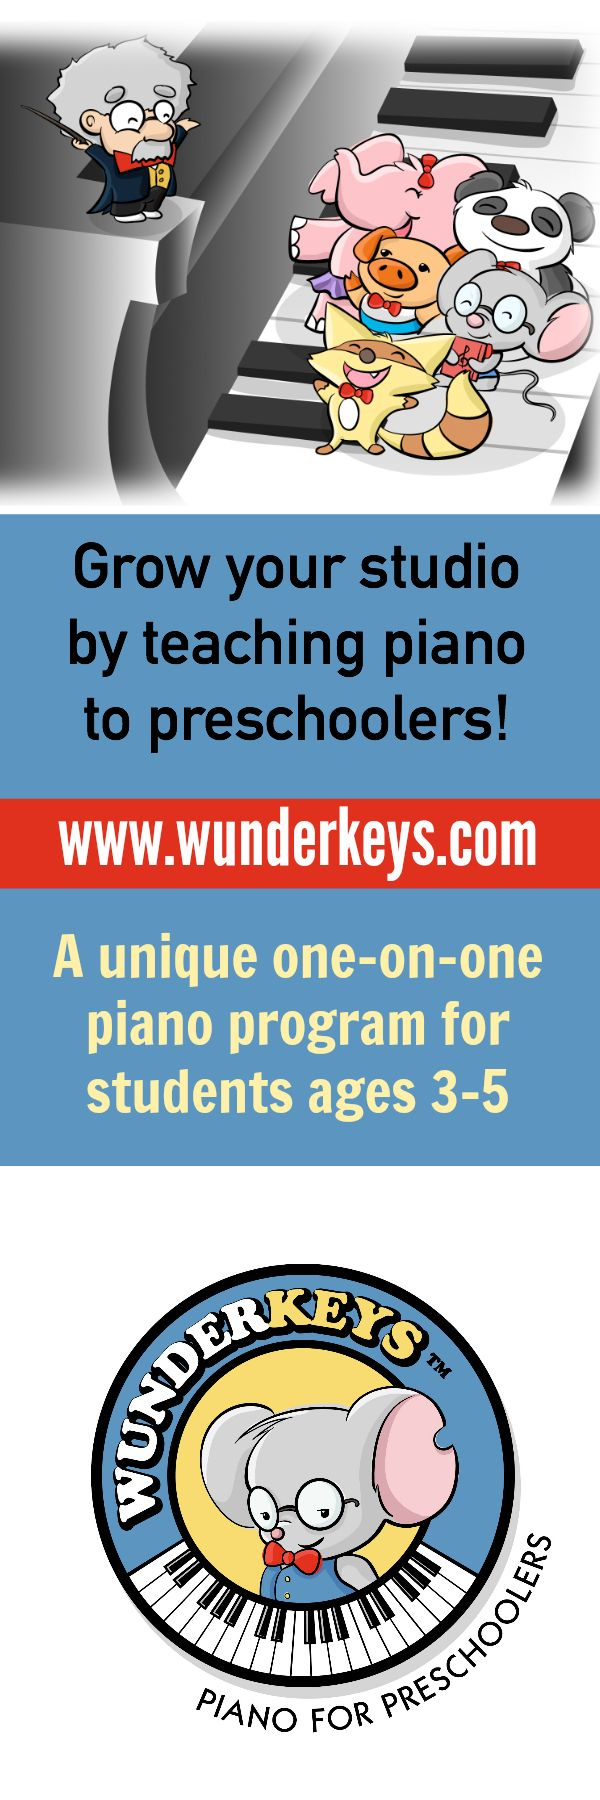 Boost your studio numbers like never before by being the first to offer piano lessons for preschoolers in your community. WunderKeys has NO registration or licensing fees and you won't believe the support we give you in getting started! Check it out at www.wunderkeys.com #PianoForPreschoolers #WunderKeys #Piano #Teaching